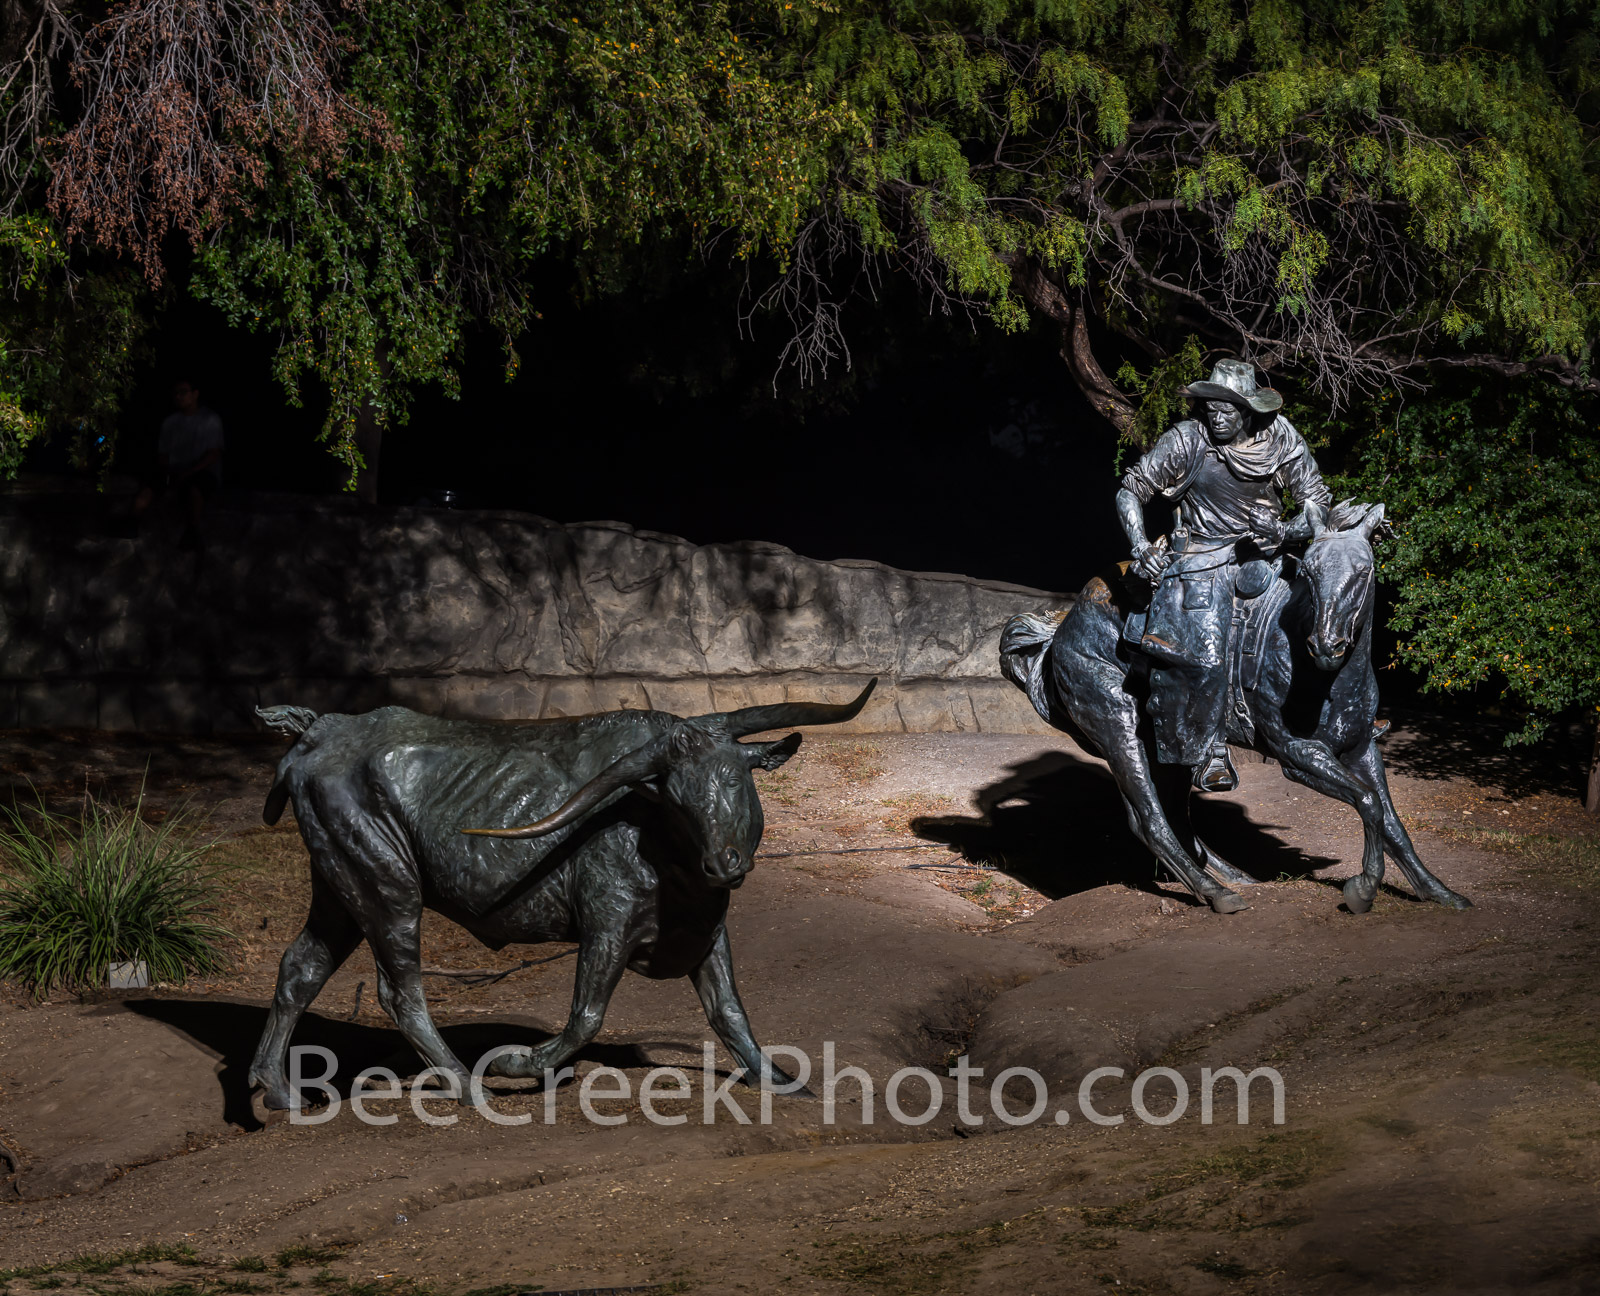 The Stragler - This is an image from the Dallas Pioneer Plaza Sculpture in downtown Dallas of a lone steer and a trail...